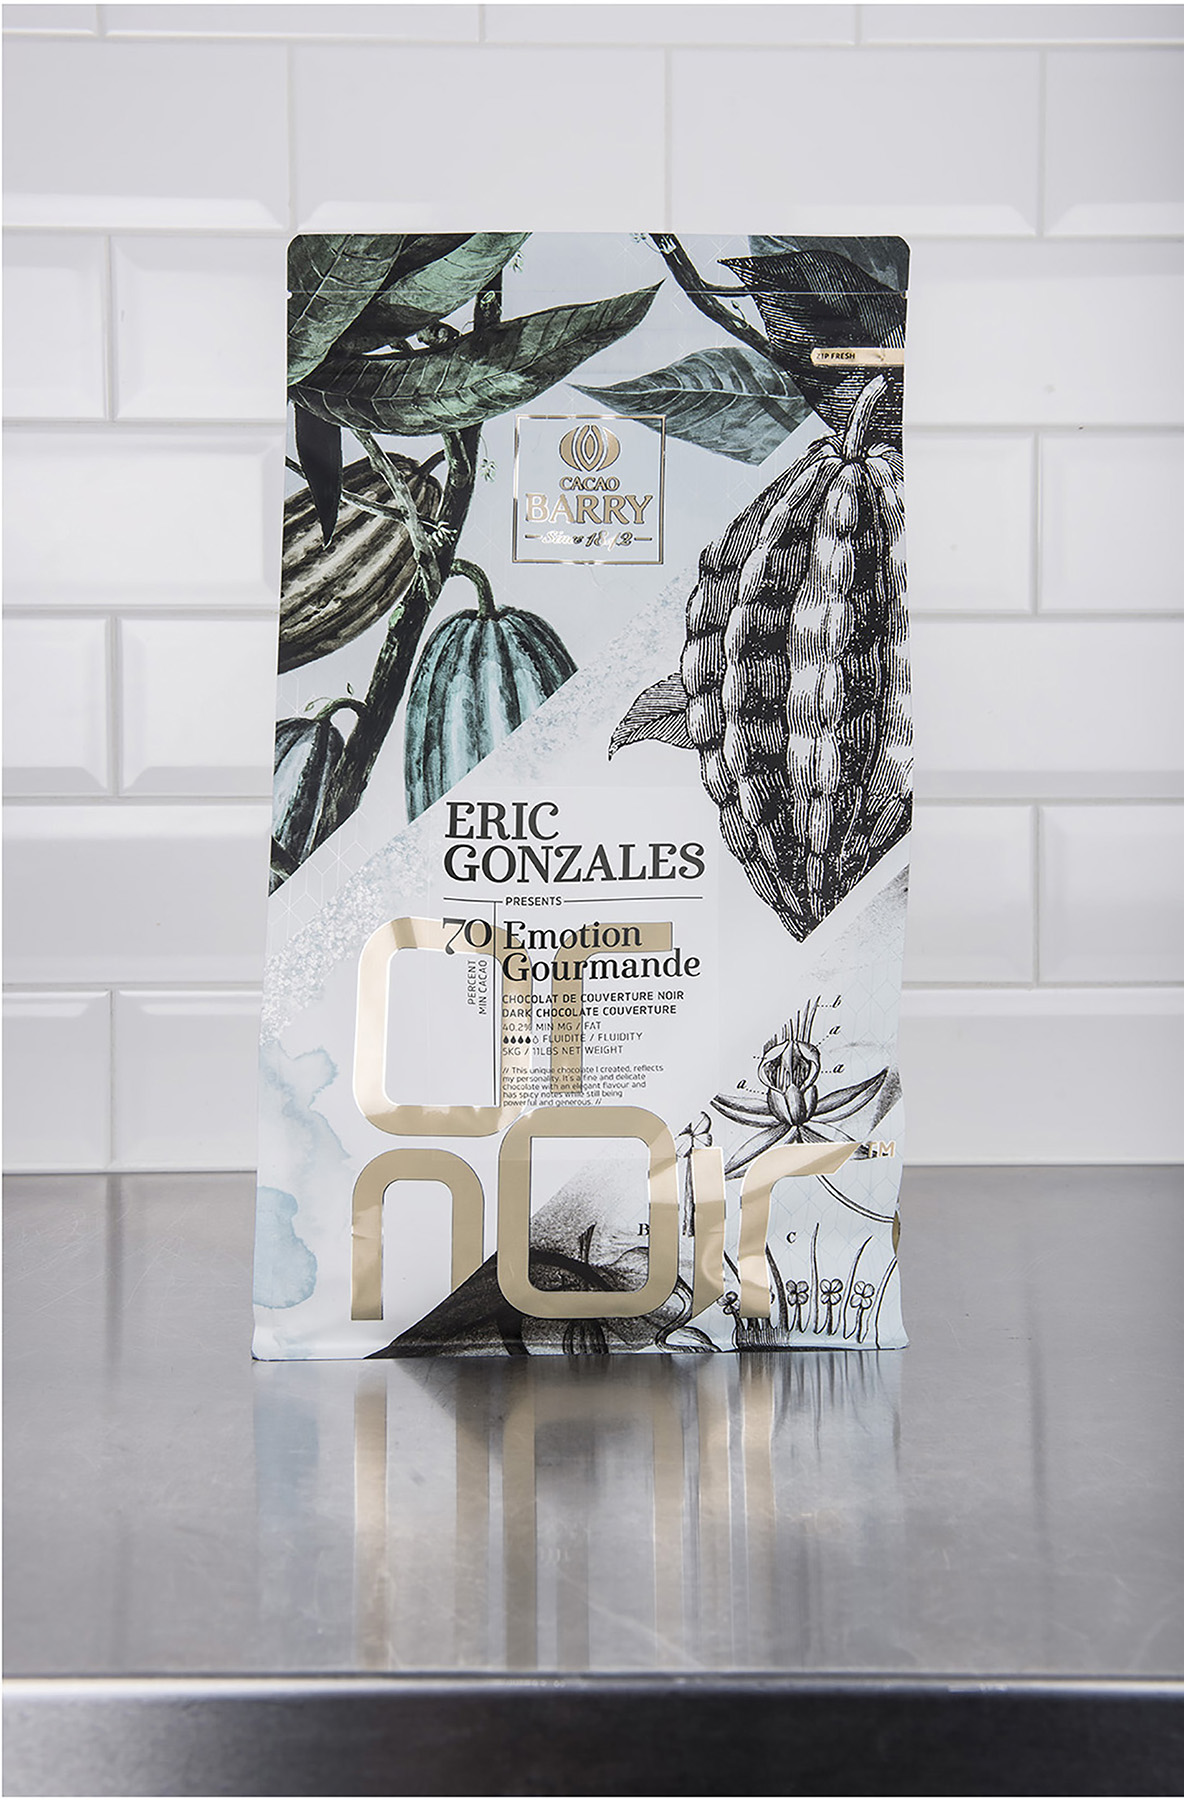 cacao-barry-diseno-packaging-agencias-diseno